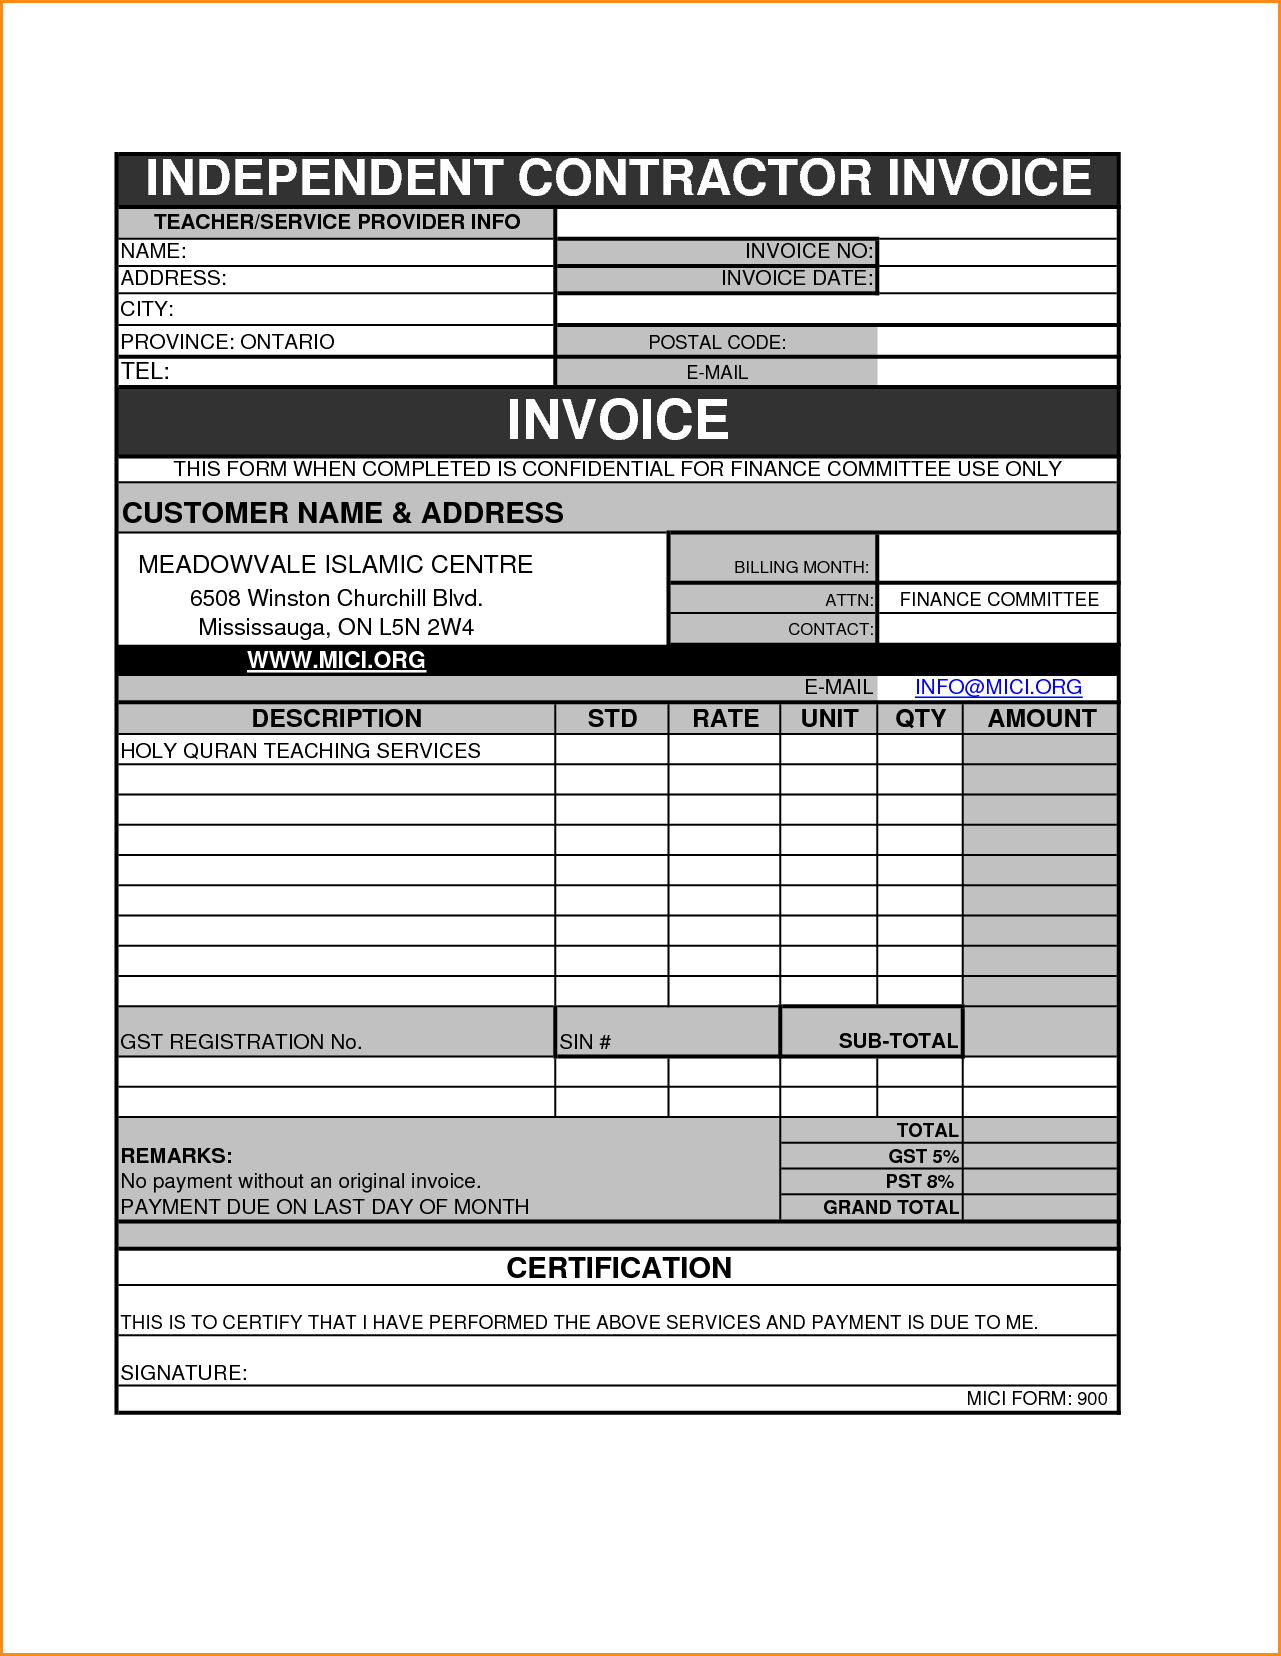 Consultant Invoice Template Free and Contractor Invoice Template Rabitah